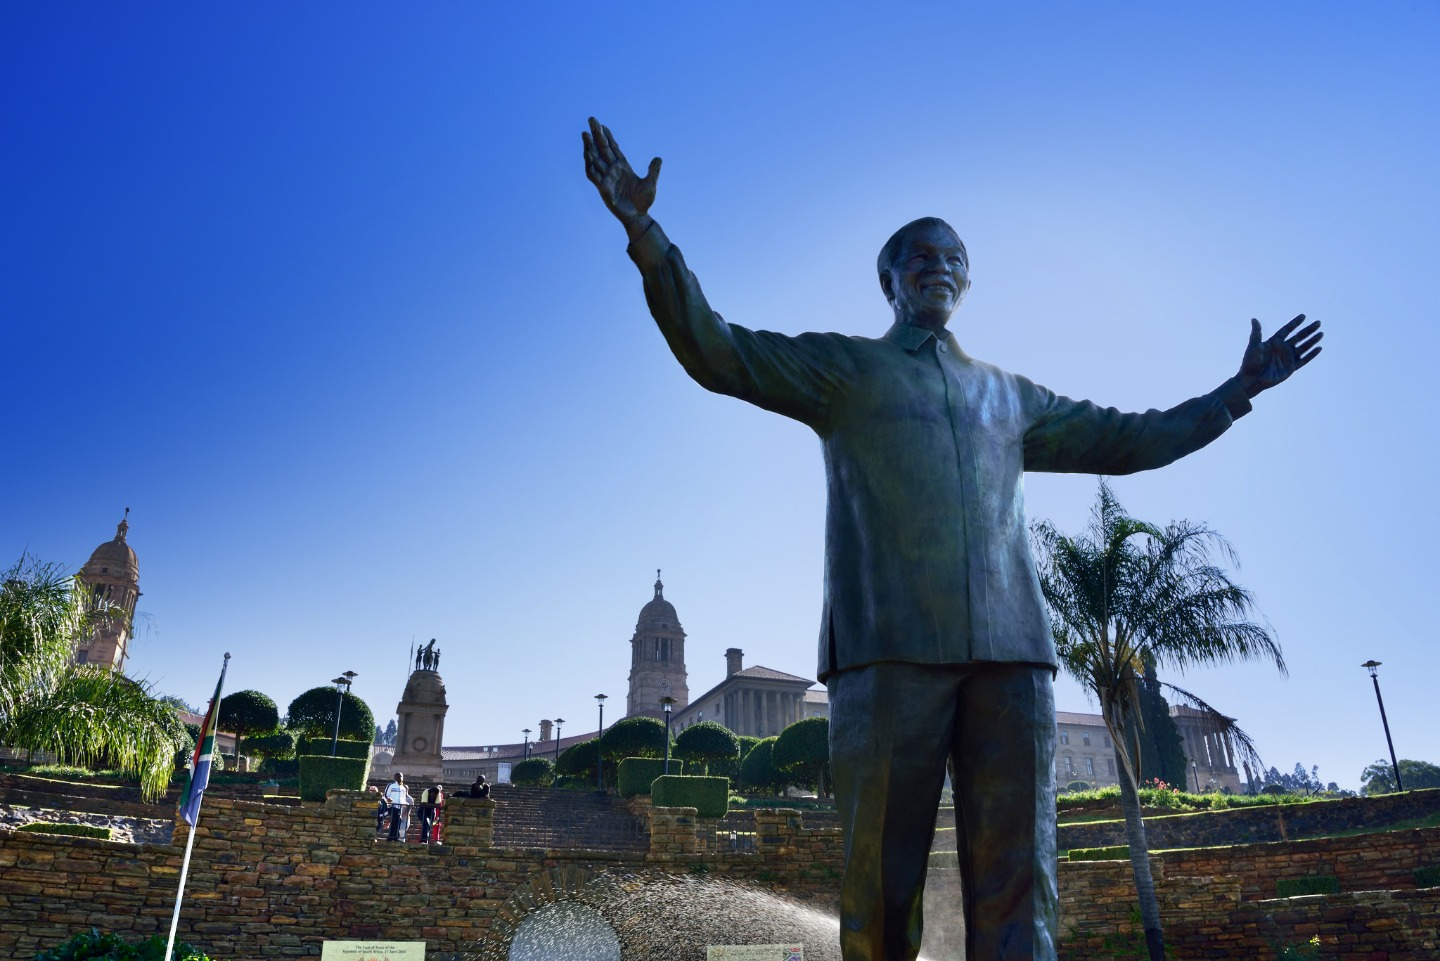 https://s3.eu-west-2.amazonaws.com/tshwane2018/Nelson_Mandela_Statue_Unoion_Buildings_South_Africa.jpg